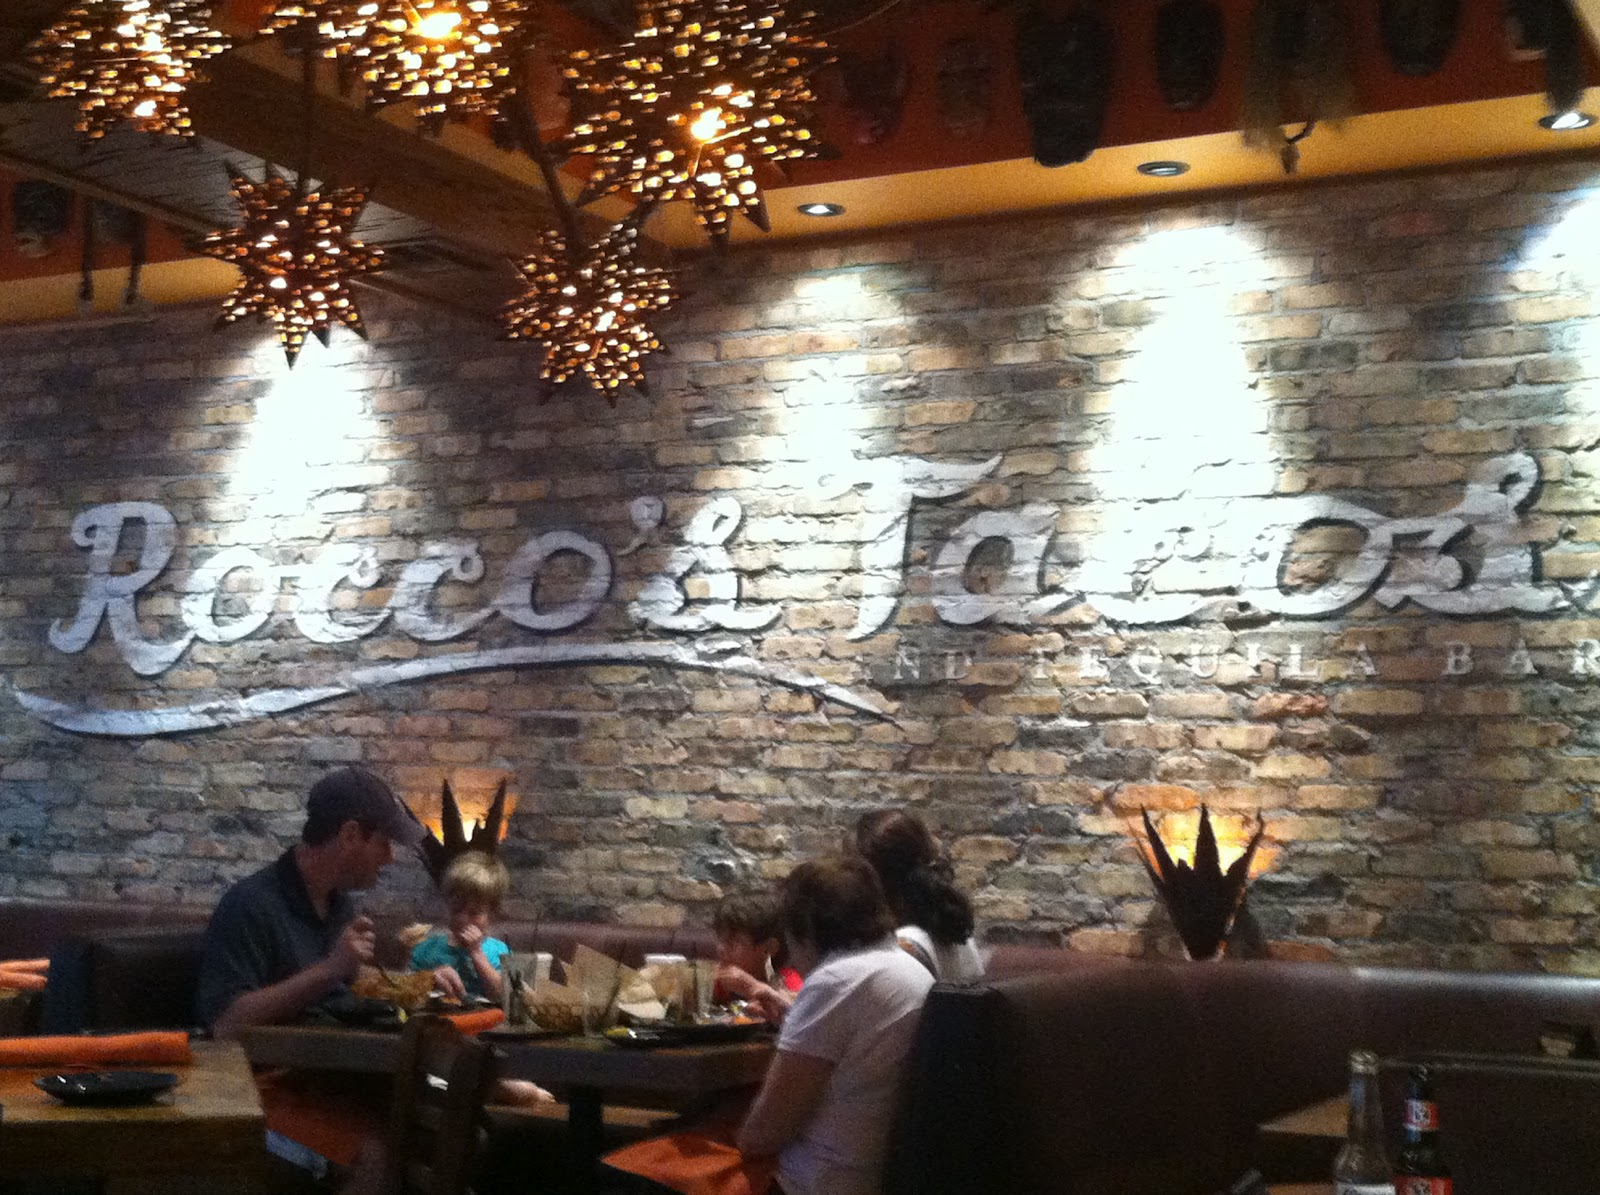 Tipsy foodie rocco 39 s tacos and tequila bar palm beach - Mexican restaurant palm beach gardens ...